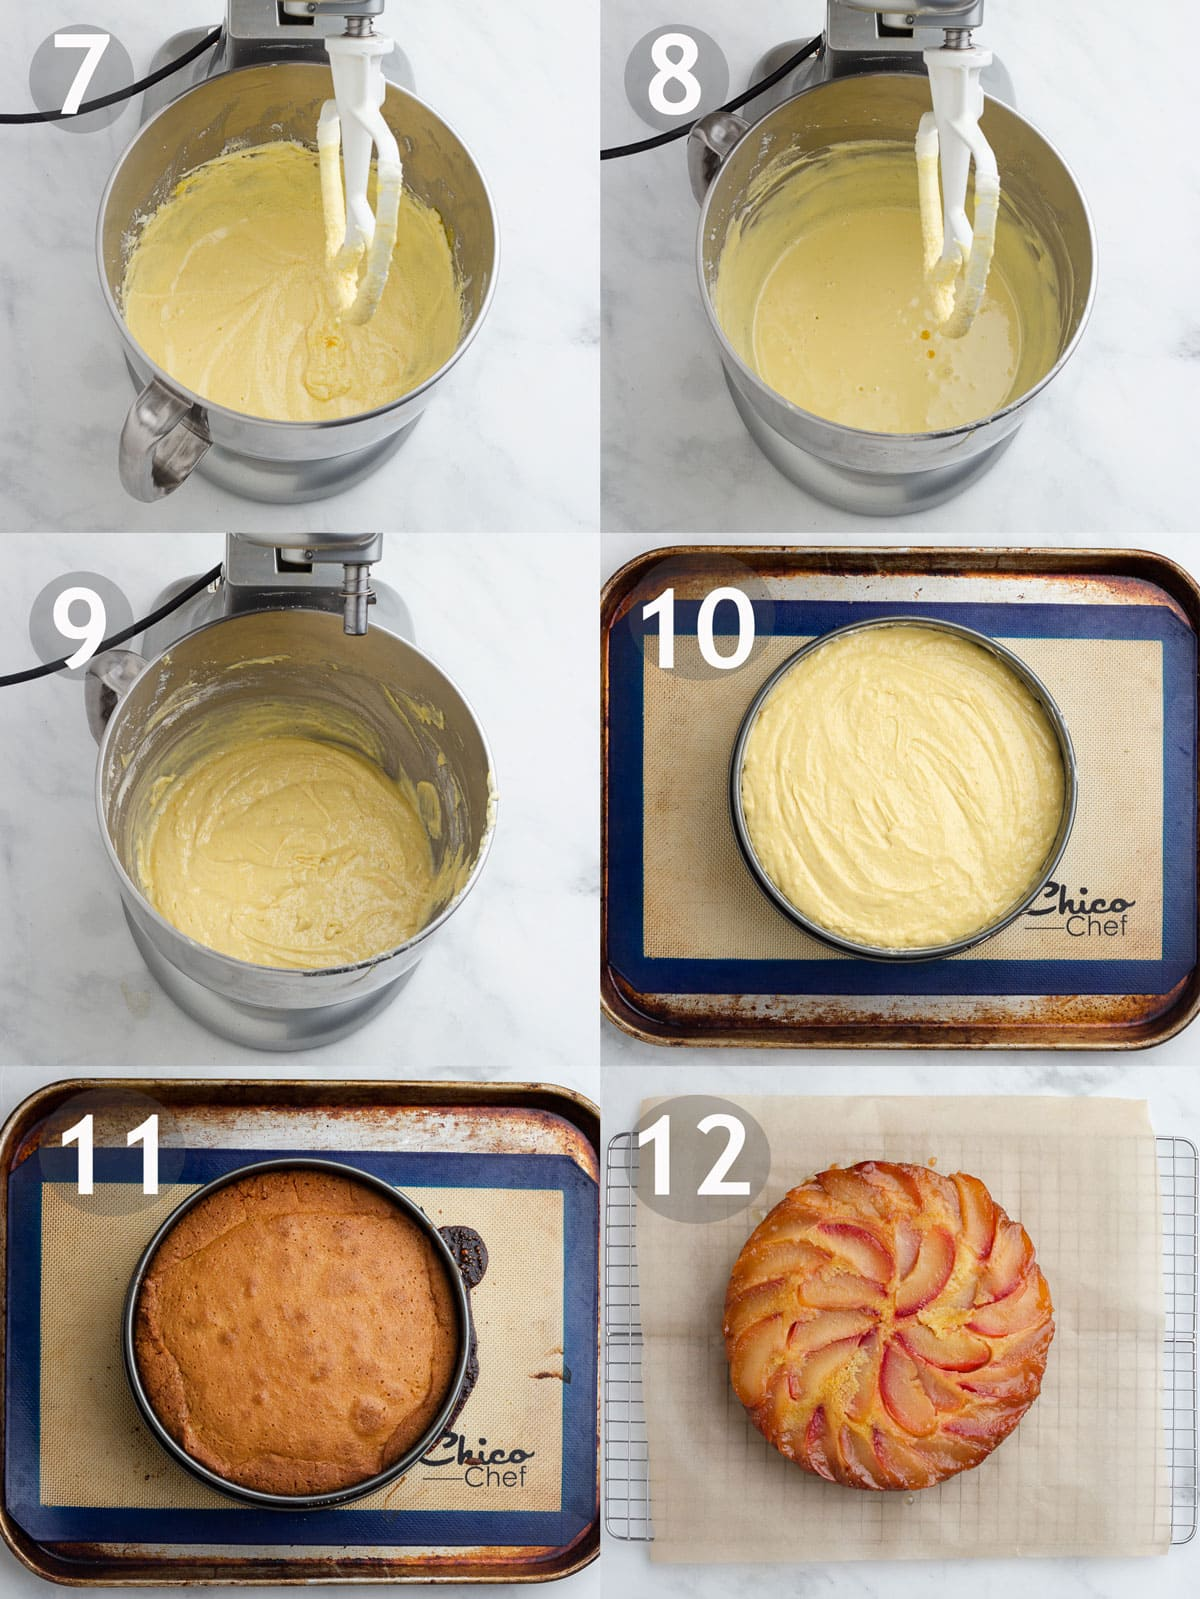 Steps to make cake including mixing wet ingredients, adding dry ingredients and baking cake.